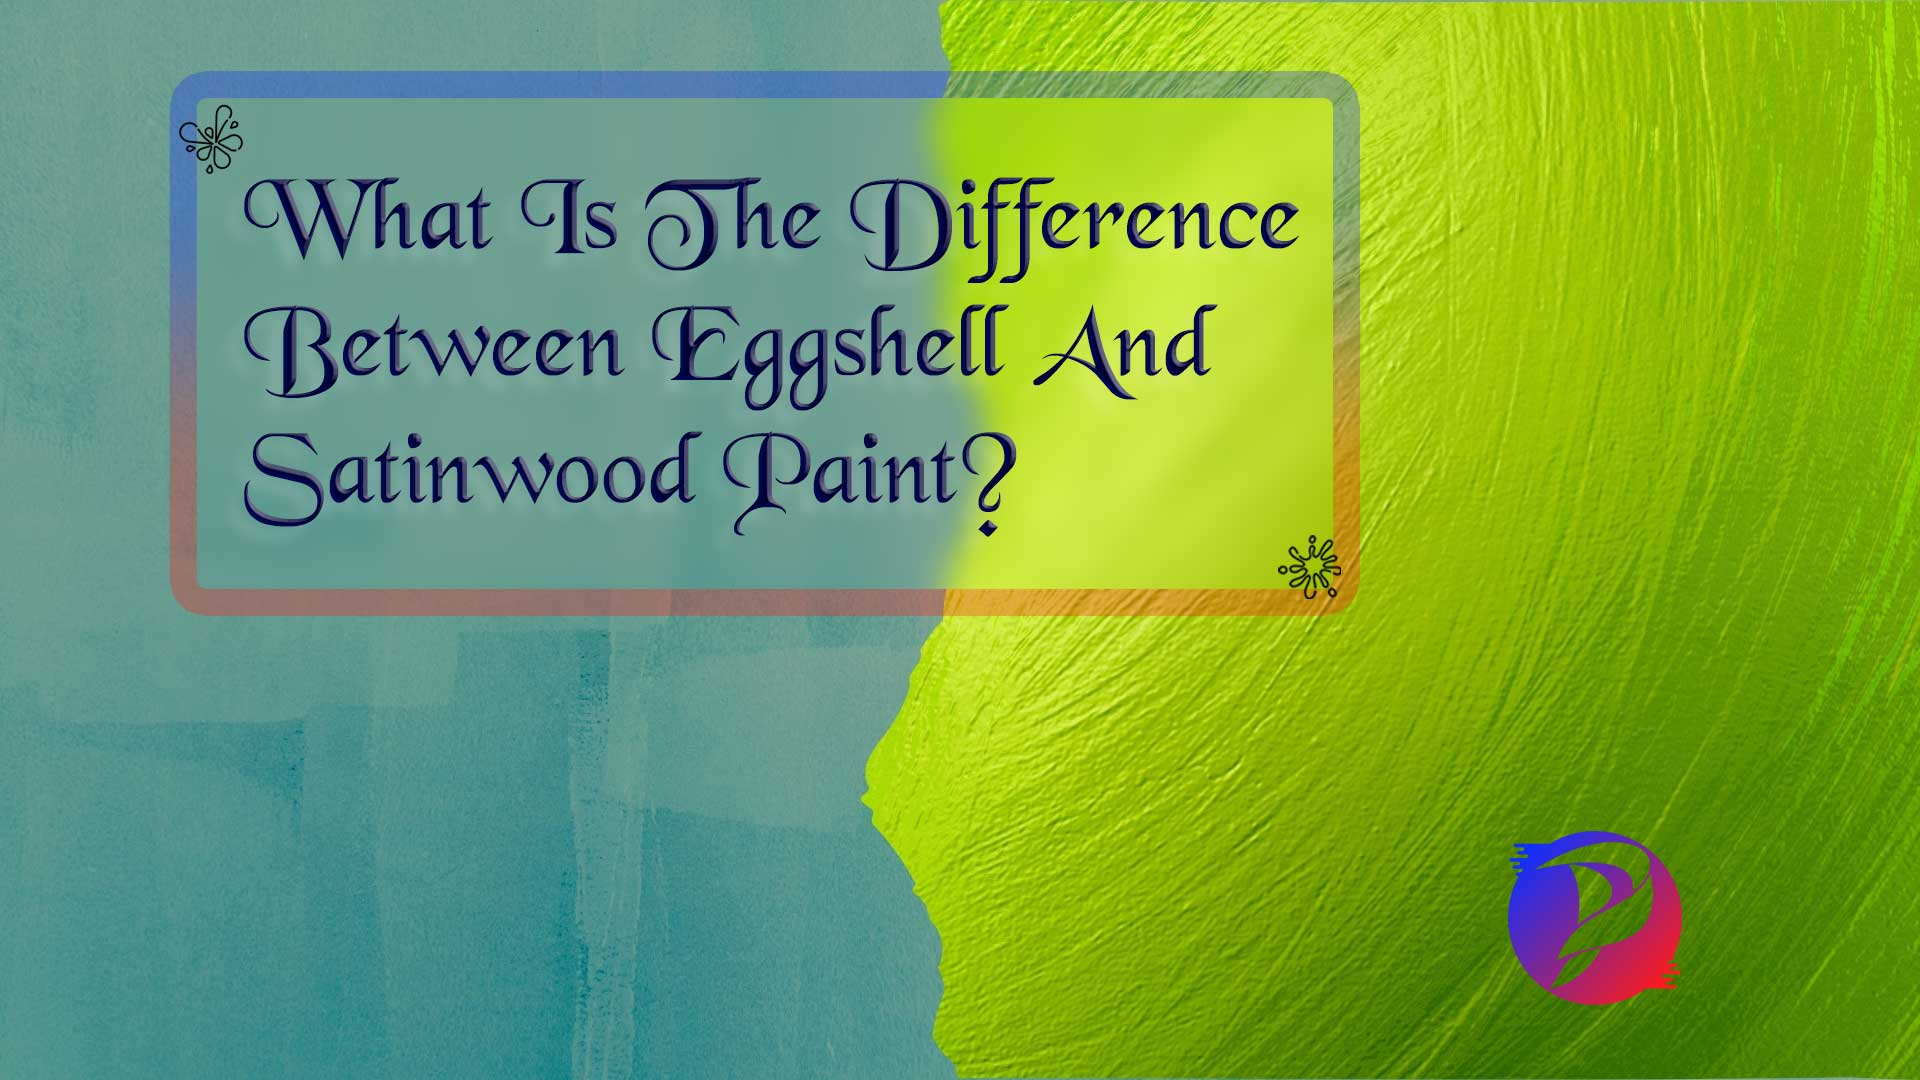 Difference-Between-Eggshell-And-Satinwood-Paint